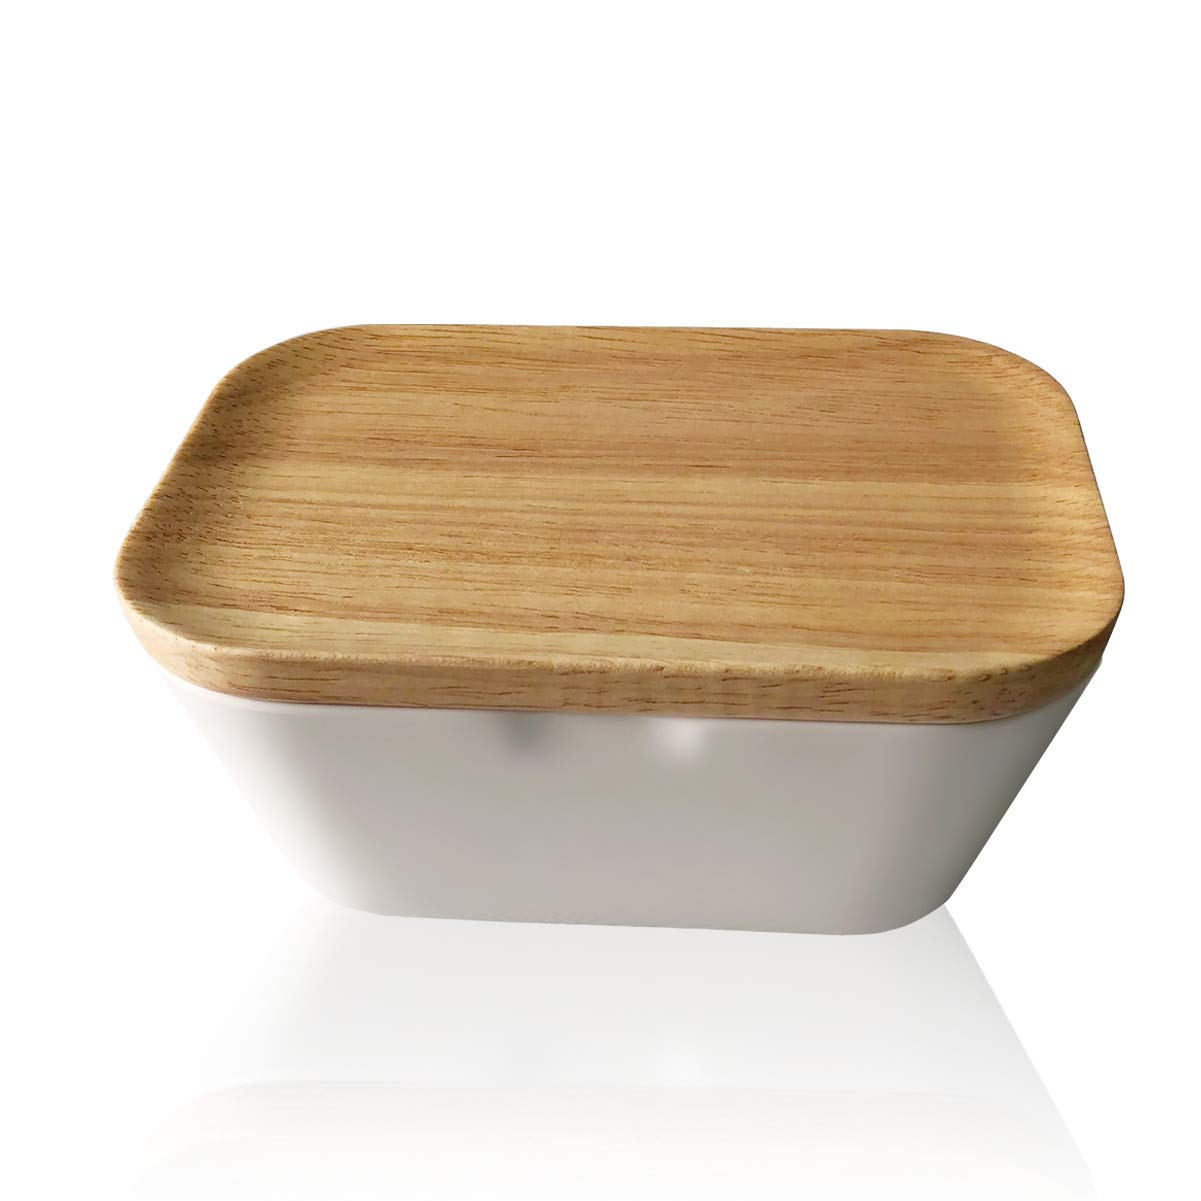 Lependor Melamine Container Butter Dish with Wooden Lid Perfect For East/West Butter - with Wooden Lid